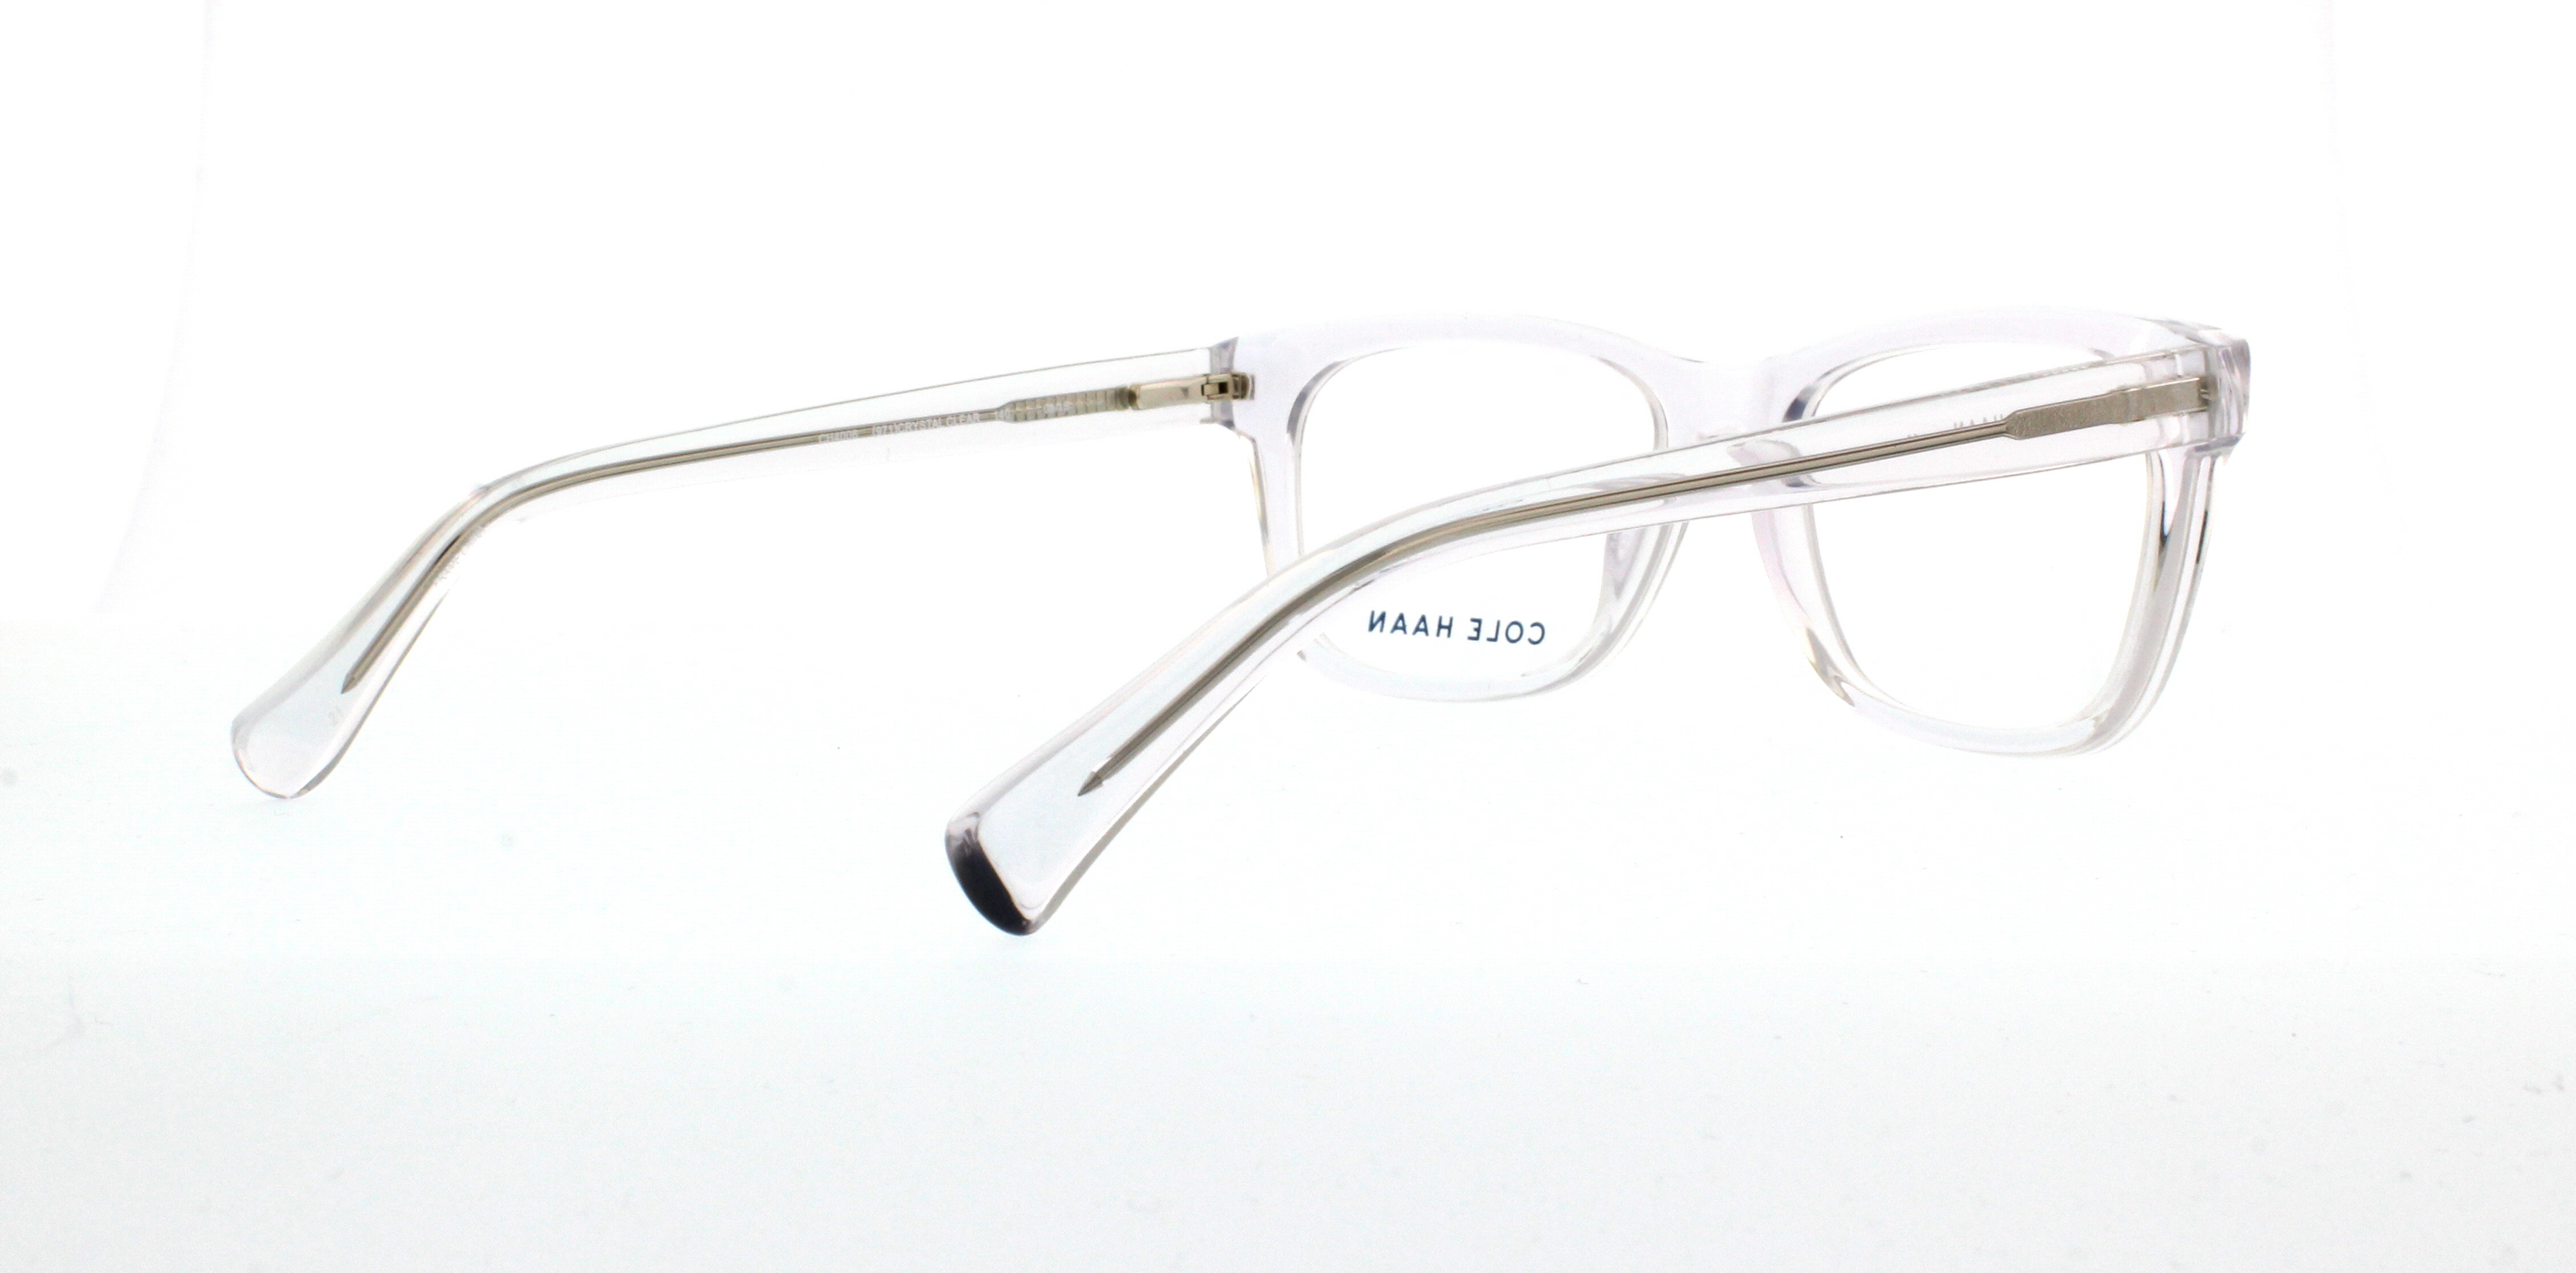 927d0df7a98 COLE HAAN Eyeglasses CH4008 971 Crystal Clear 52MM - Walmart.com